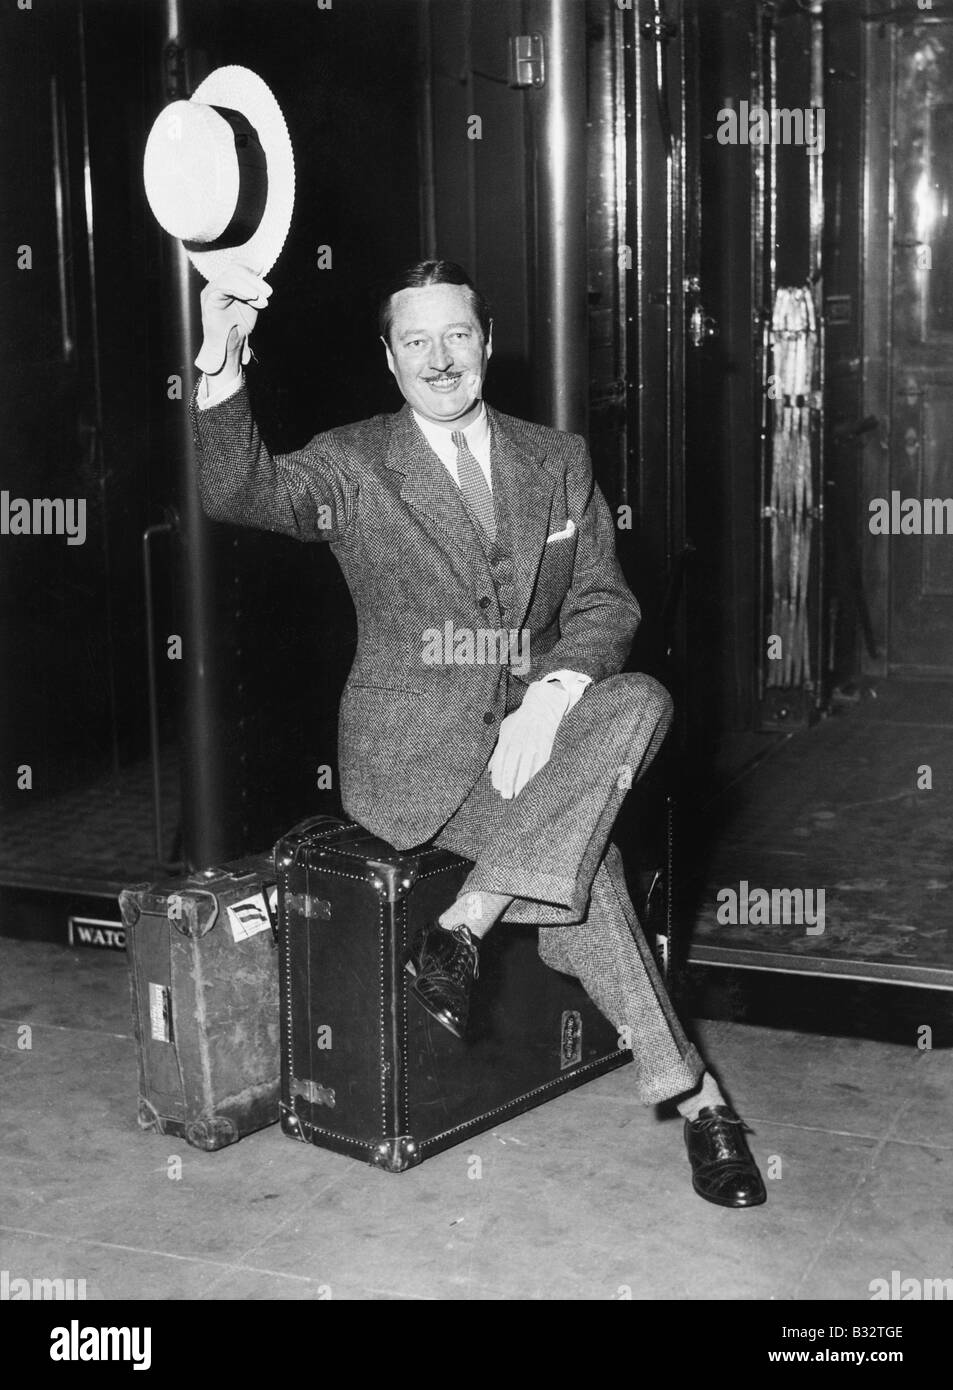 Portrait of a businessman sitting on his suitcases on a platform in front of a train - Stock Image